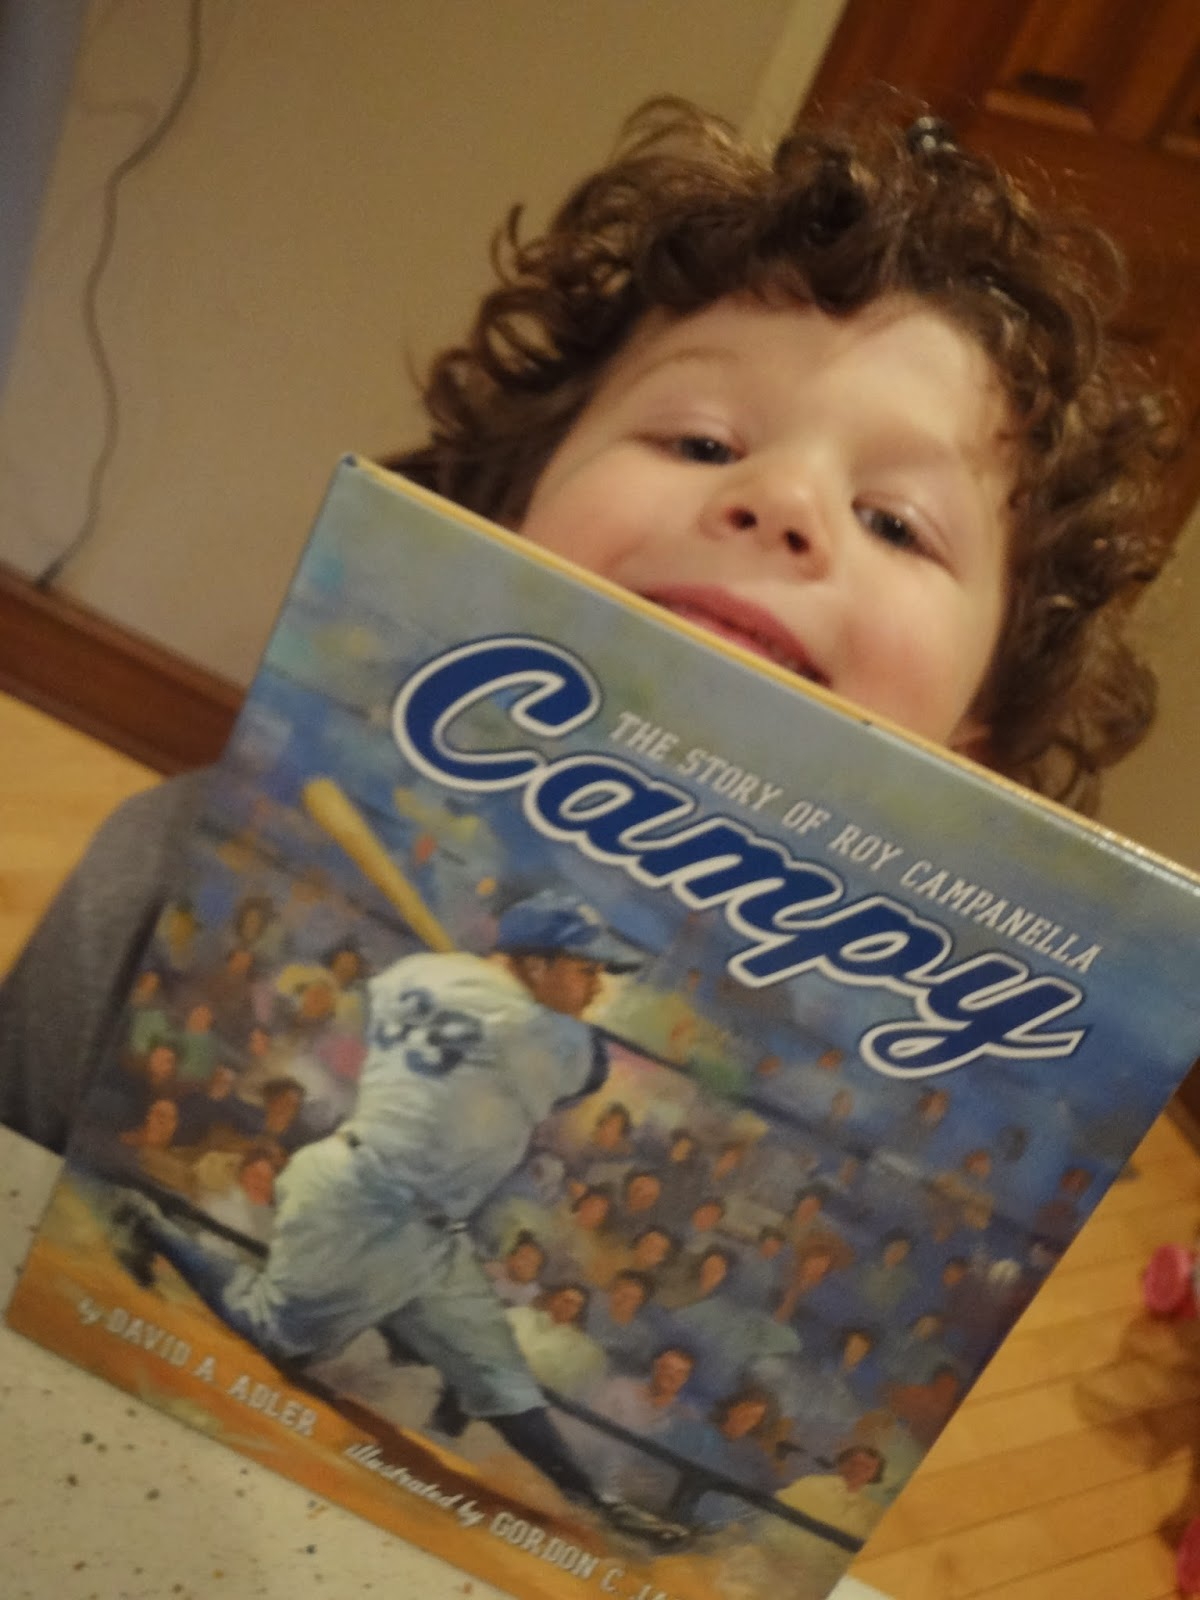 mommy s block party laughing giraffe books holiday review and the baseball greats book set has an assortment of both hardcover and paperback books by a variety of authors b is a sports guy and while baseball season is